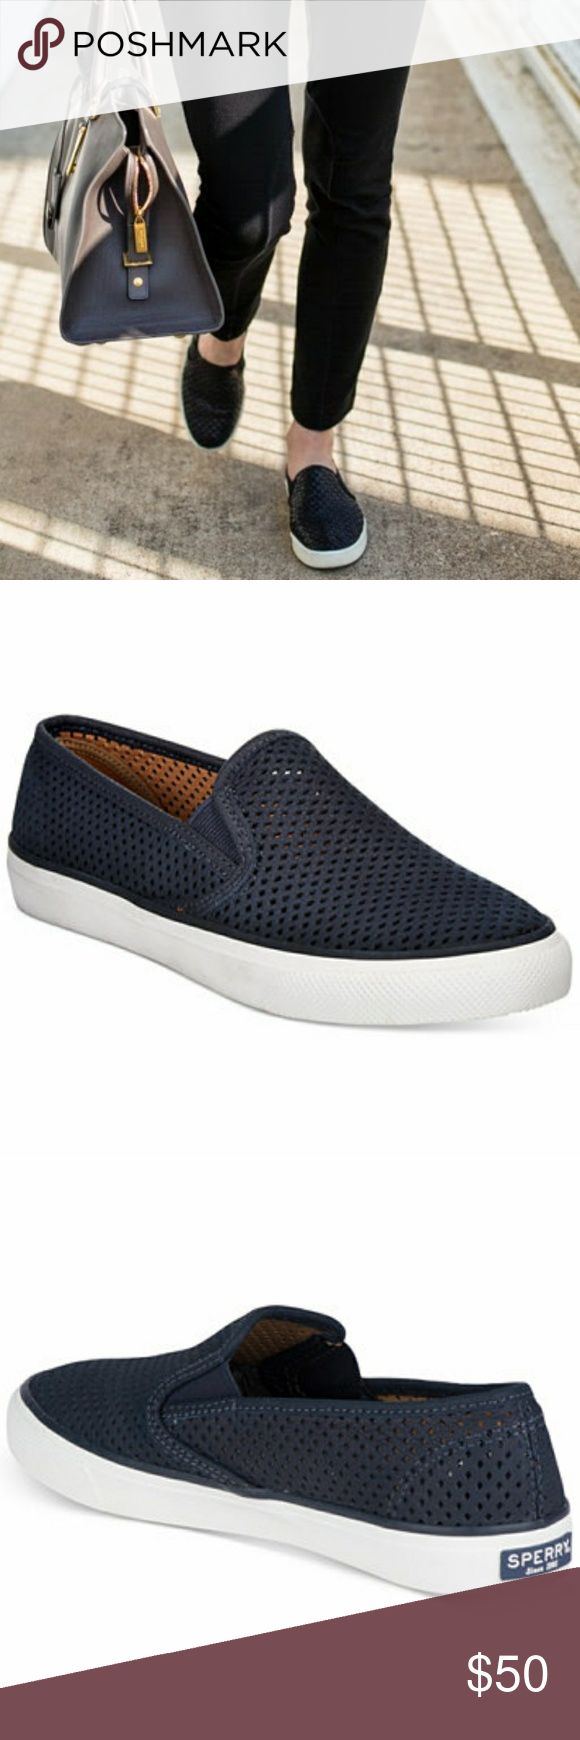 Navy Sperry Women's Seaside Perforated Slip-OnS Selling a pair of new with tags Sperry shoes. This slip ons are so cute and perfect for any season. They have a memory foam like insole, dpi they are extremely comfortable. Selling because I bought them online and don't have a door near me, but they are a little small. They were originally $75, but are now on sale for $55 so I will take the loss on that one and list then good cheaper. Sperry Top-Sider Shoes Sneakers